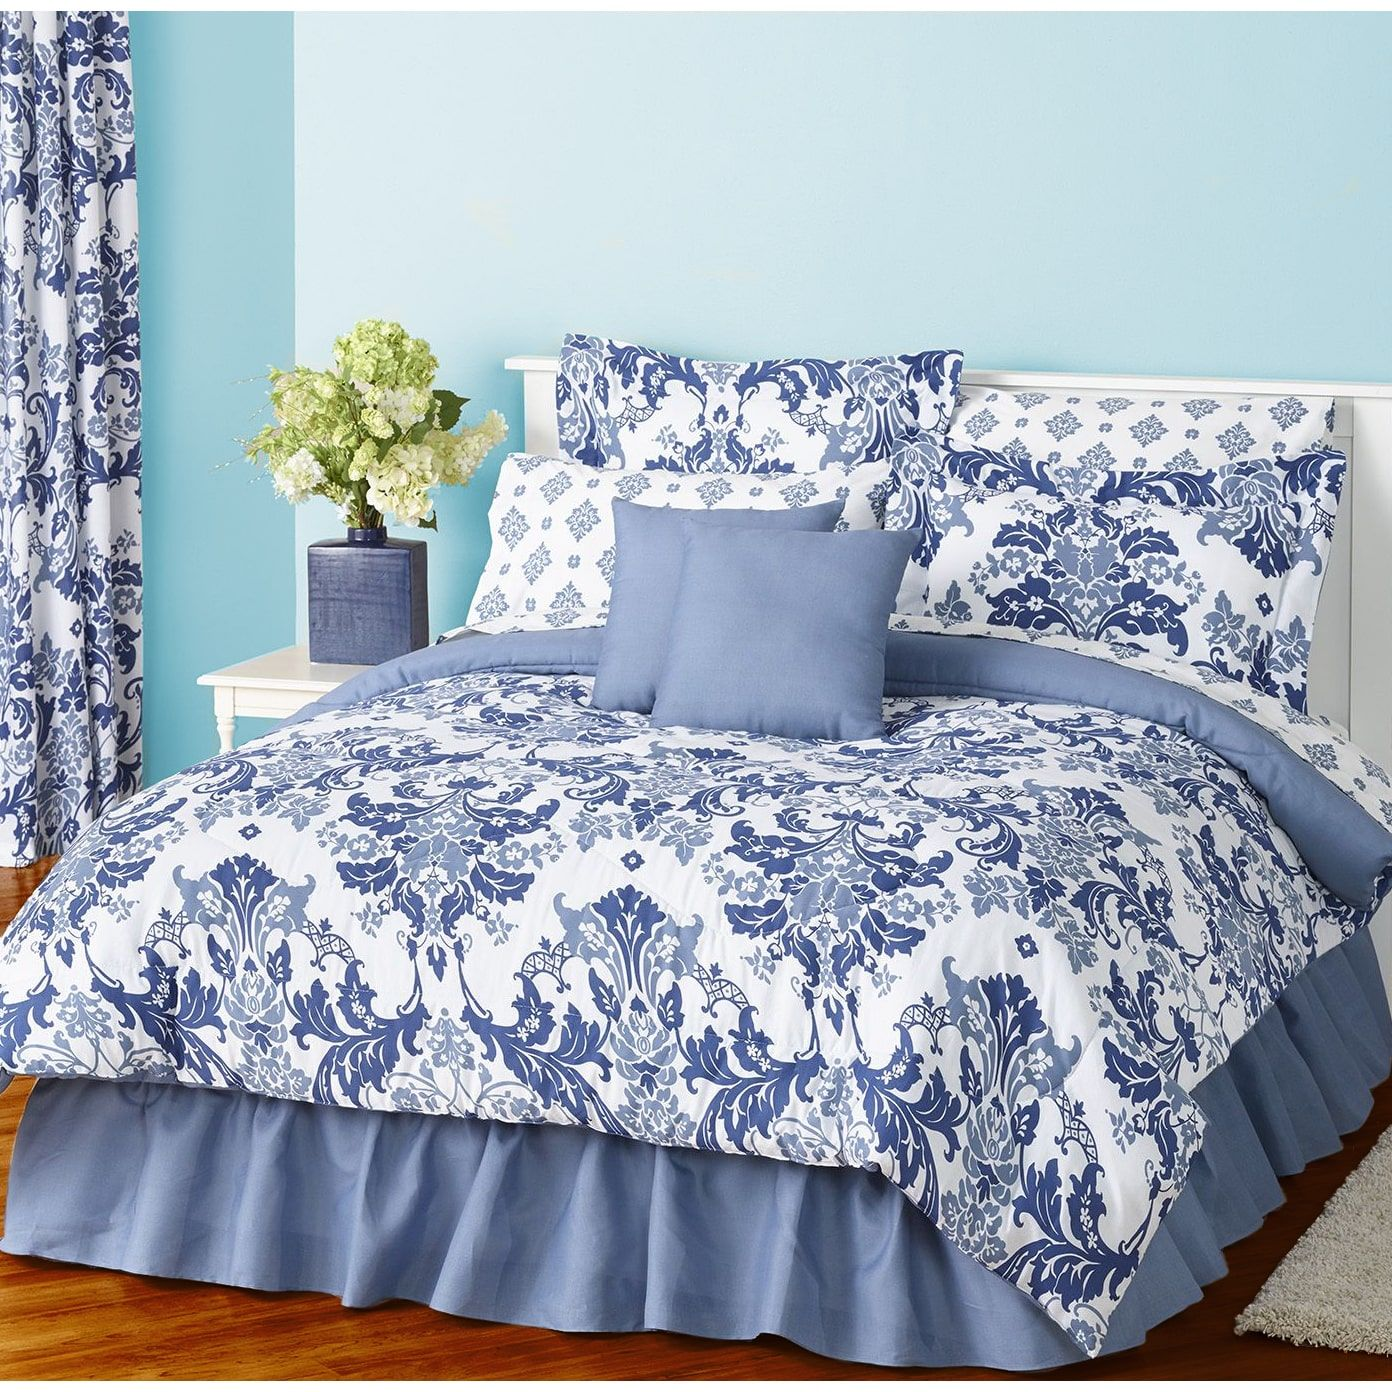 Provence Blue 8 Piece Bed in a Bag forter Set